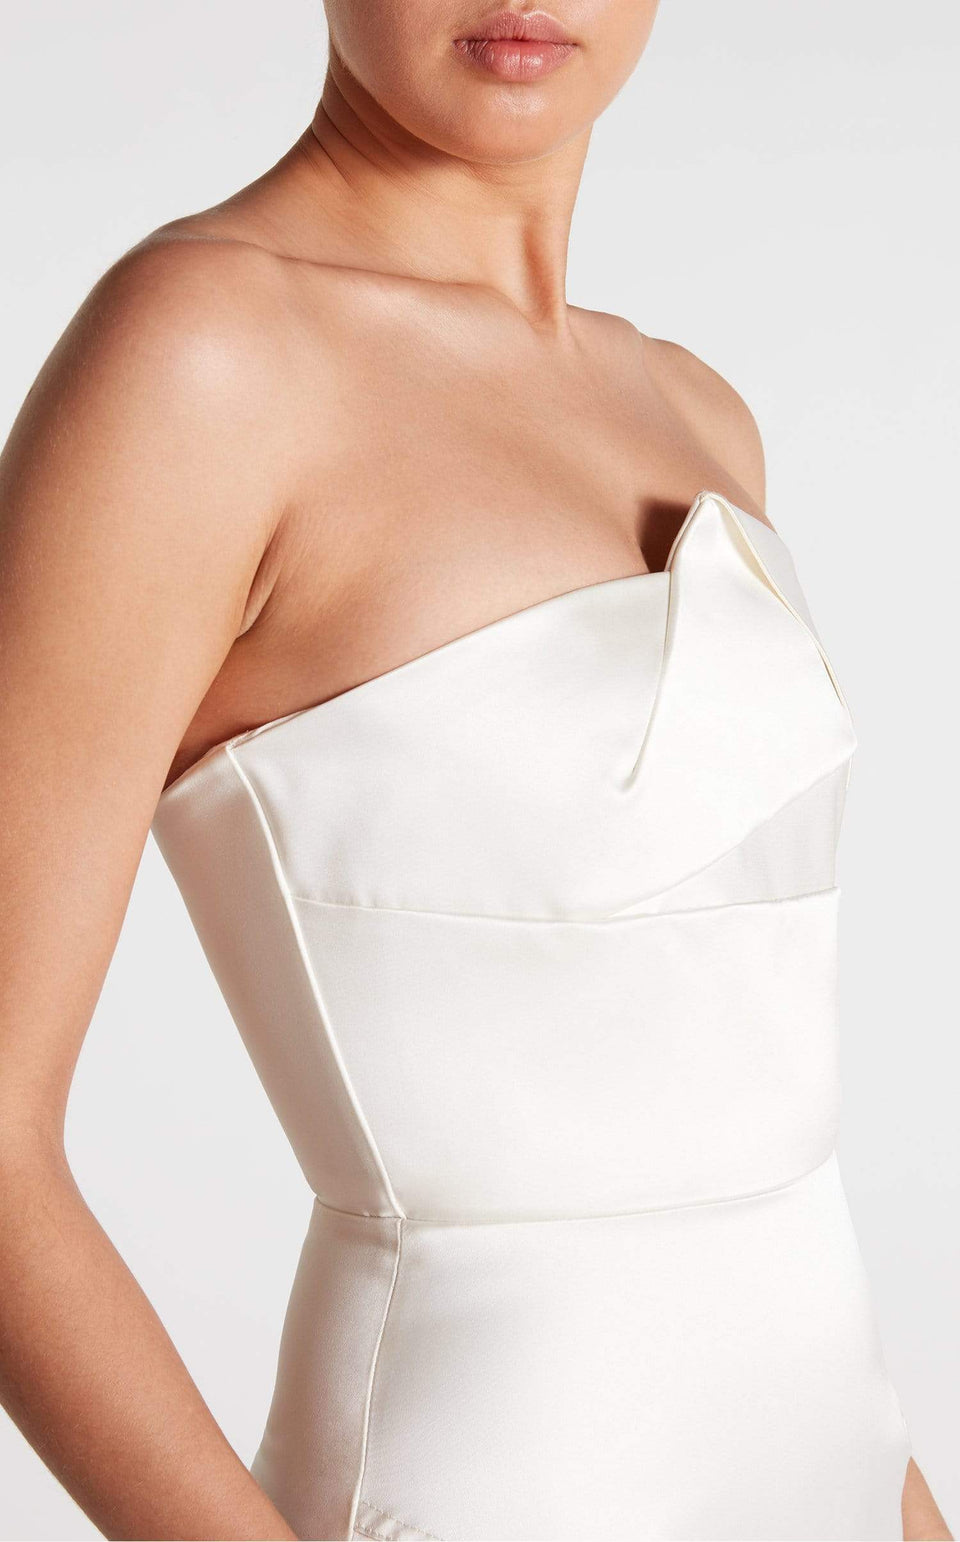 Abella Gown In White from Roland Mouret